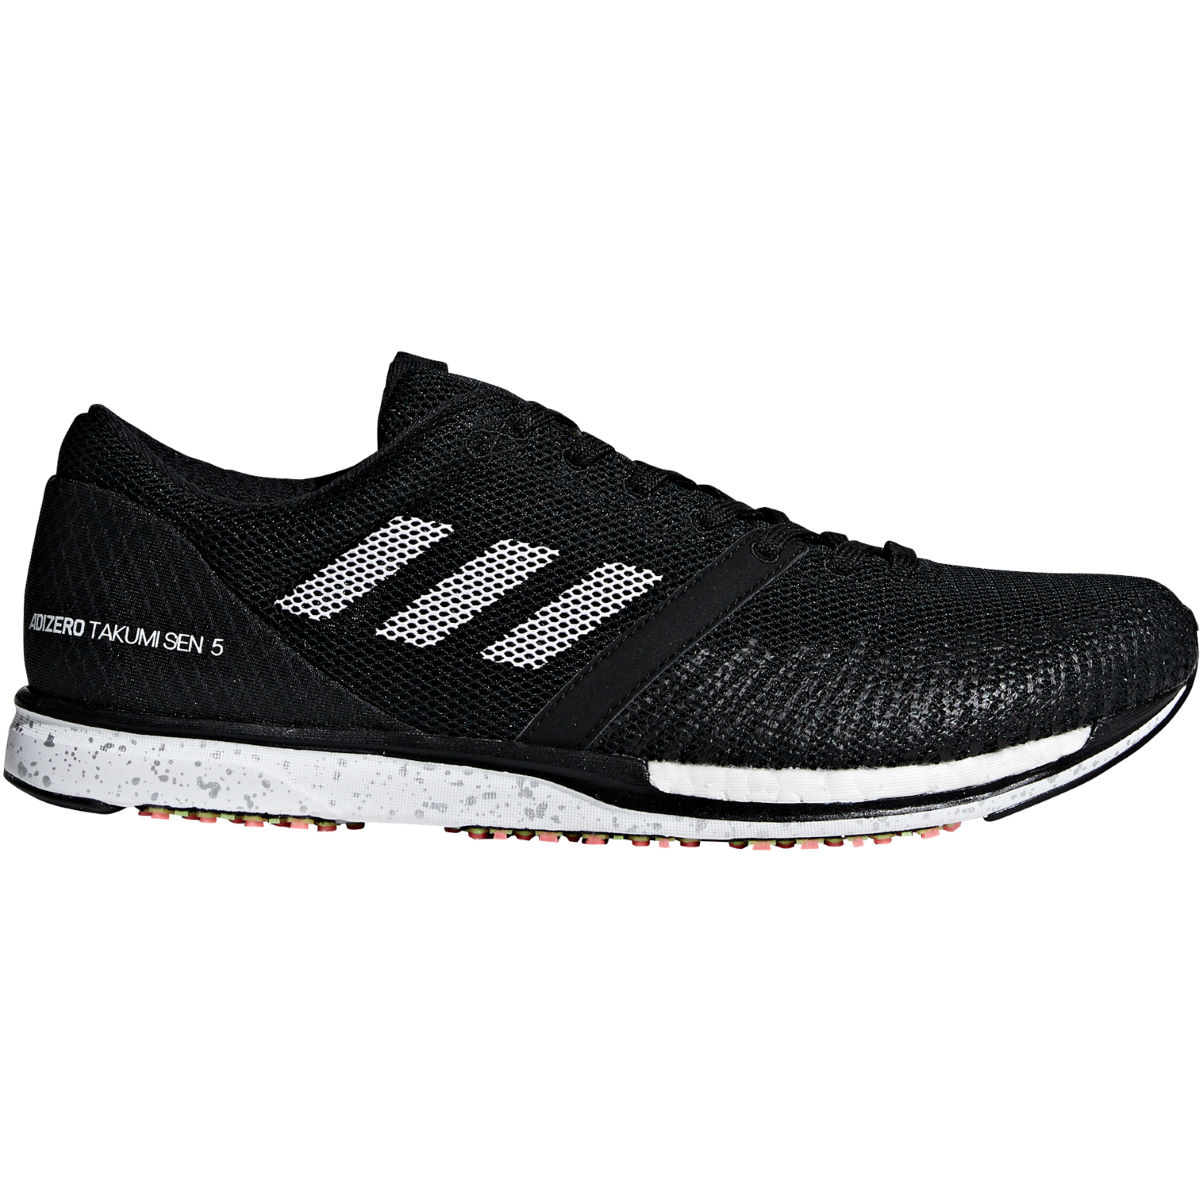 adidas Adizero Takumi Sen 5   Running Shoes